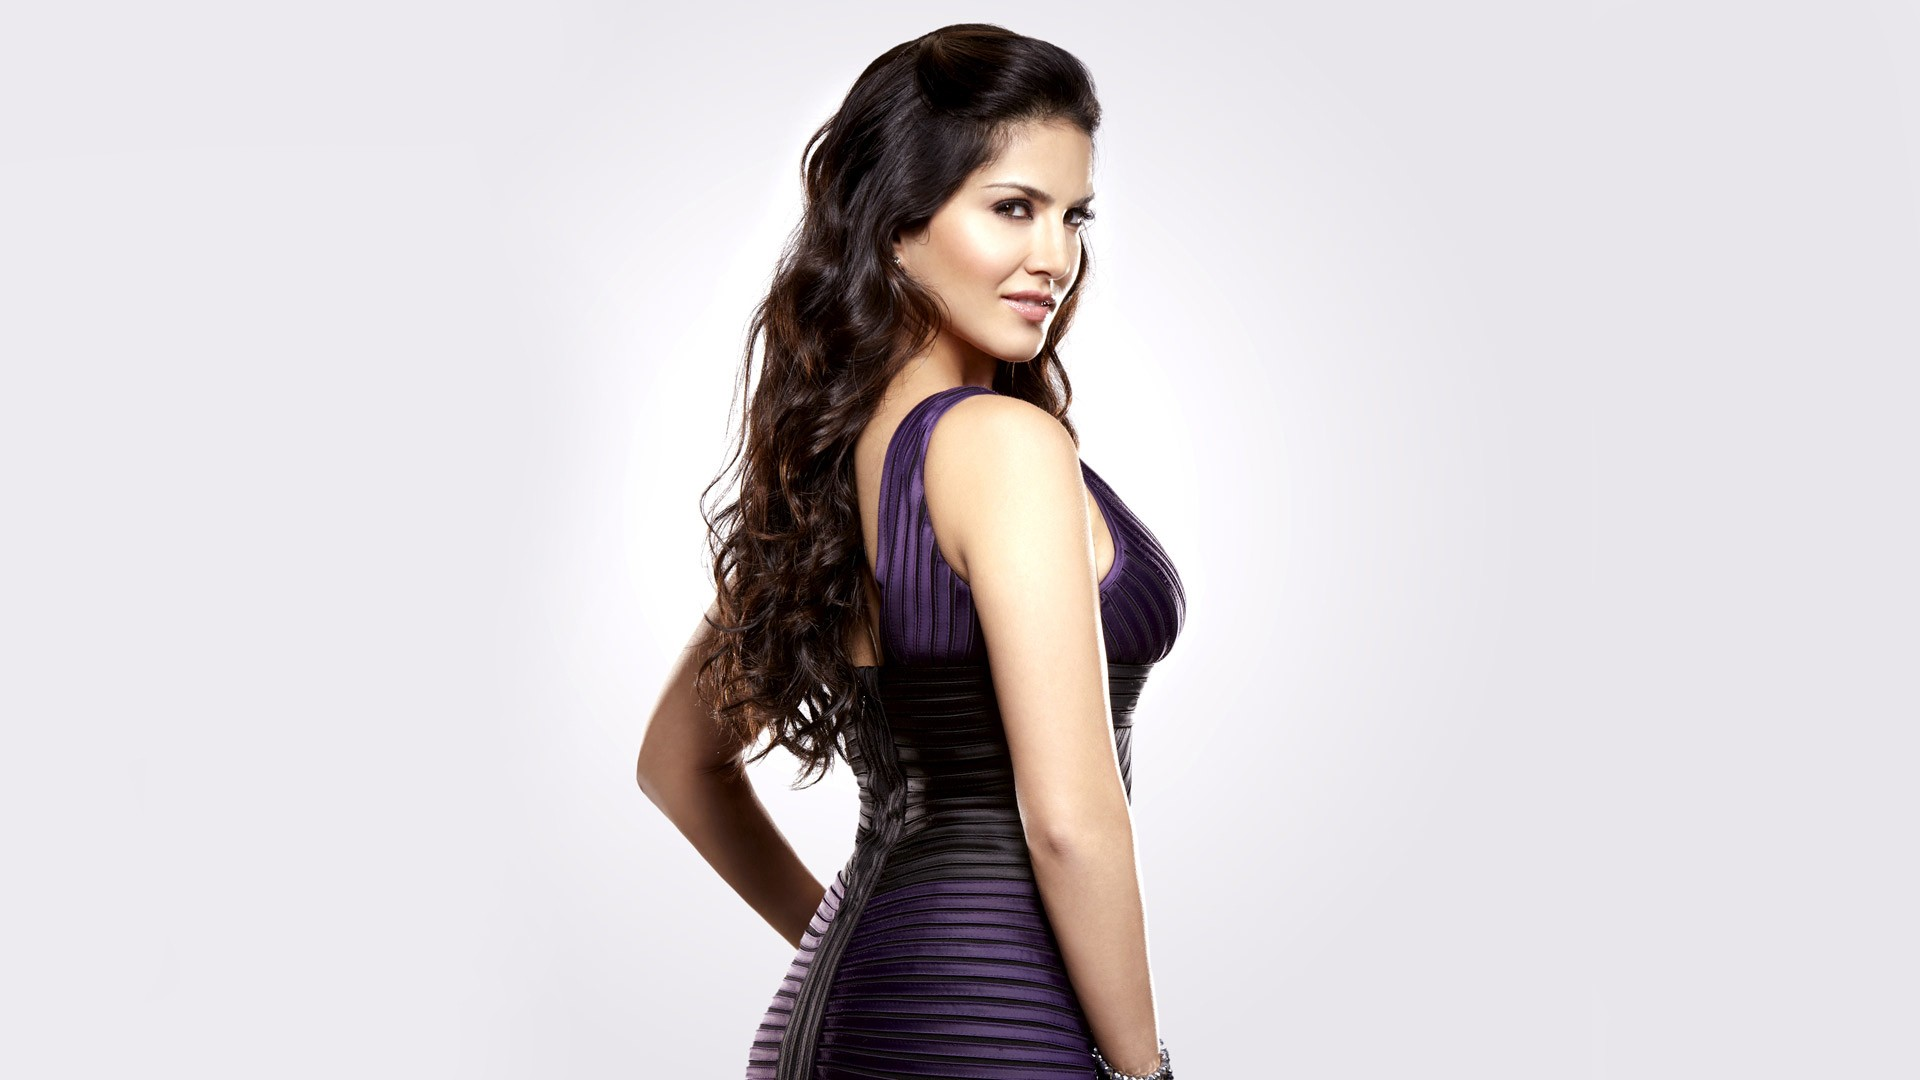 2560x1700 sunny leone 2 chromebook pixel hd 4k wallpapers, images